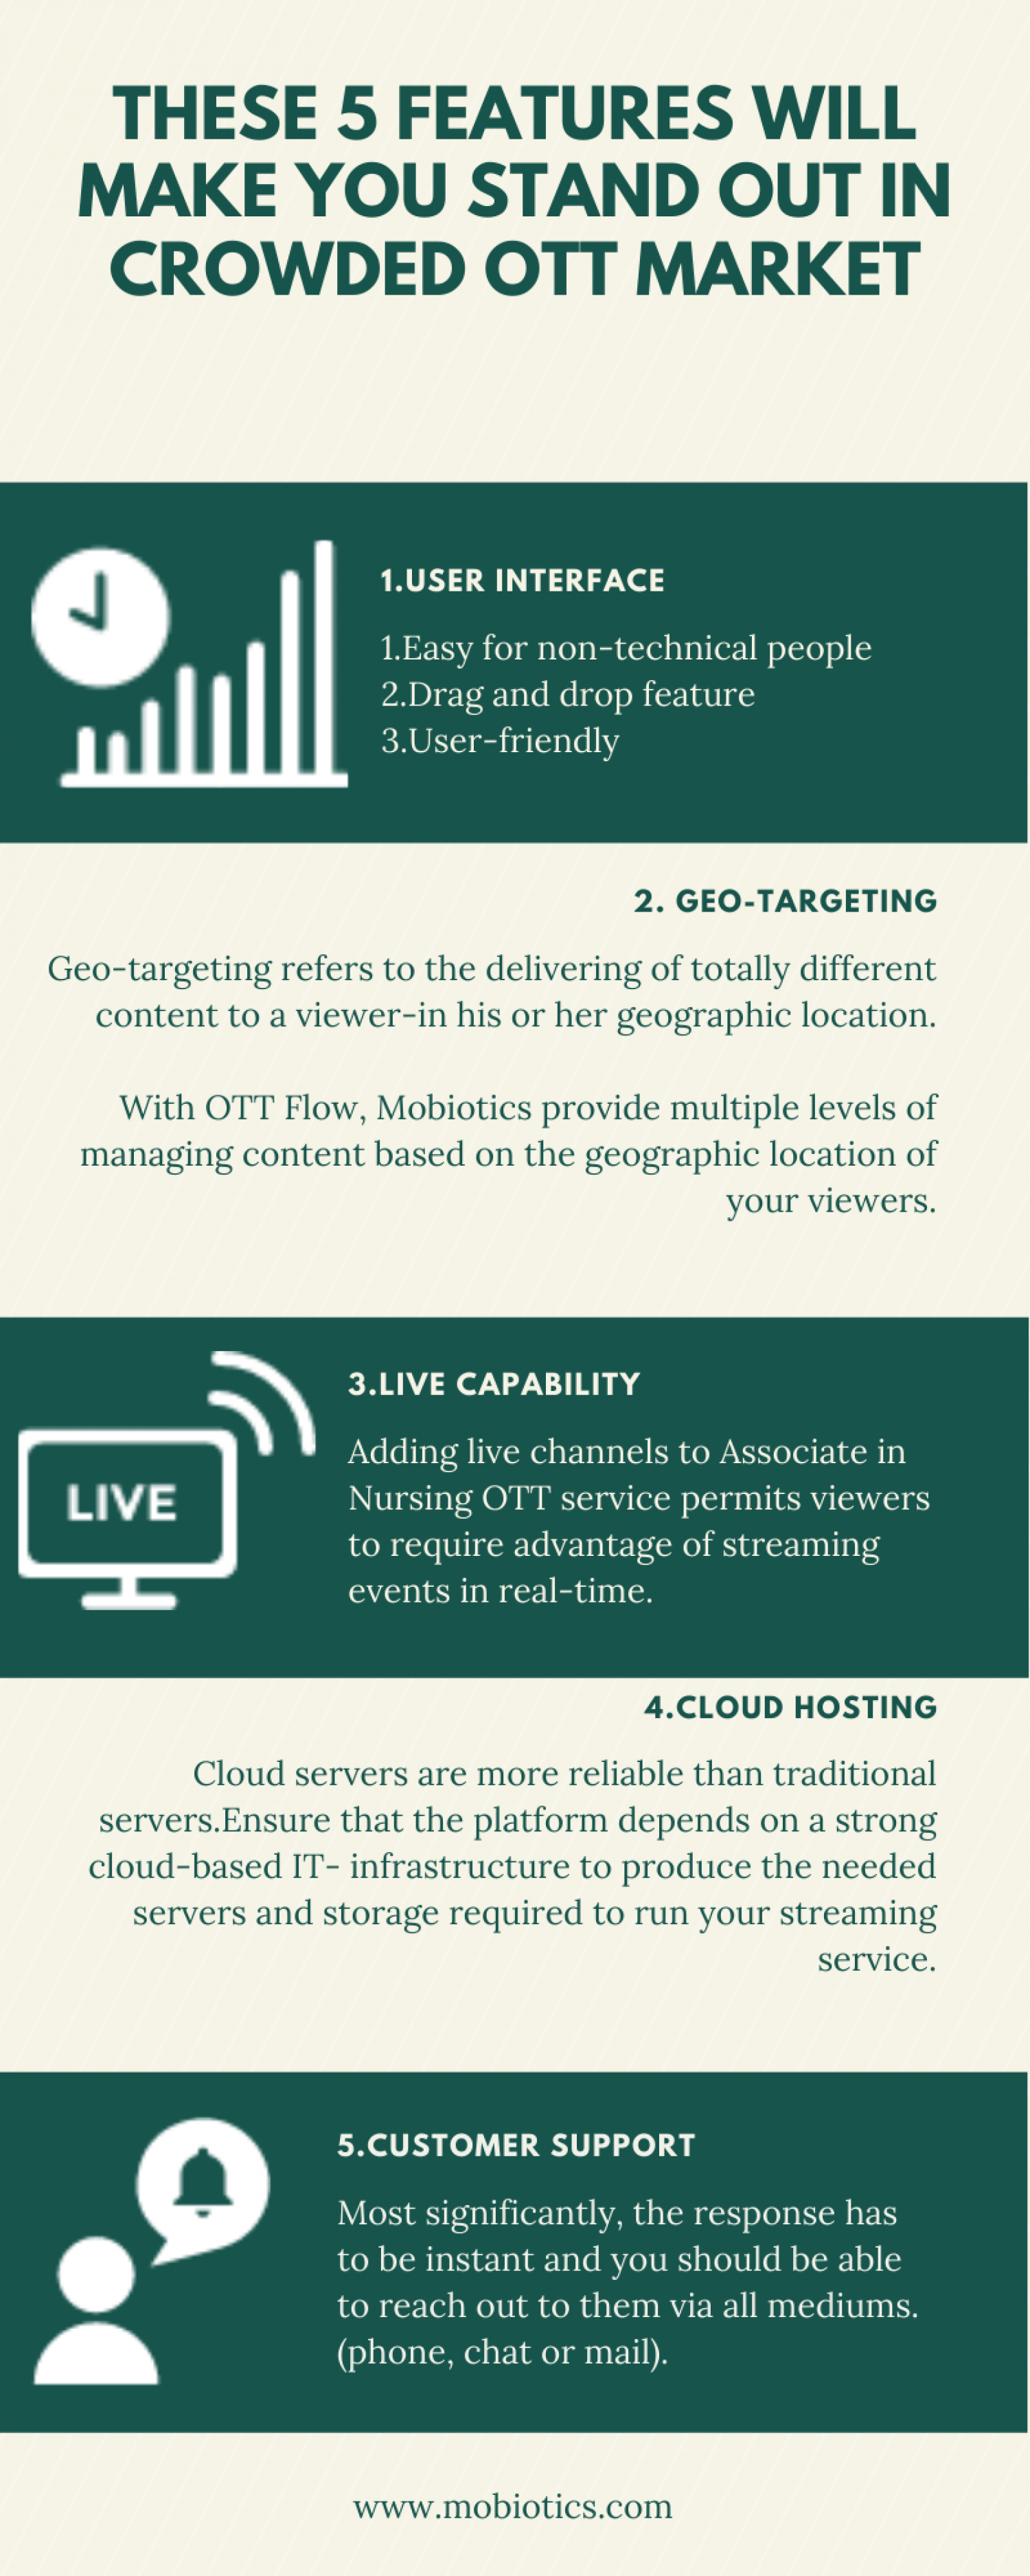 These 5 features will make you stand out in crowded OTT Market Infographic